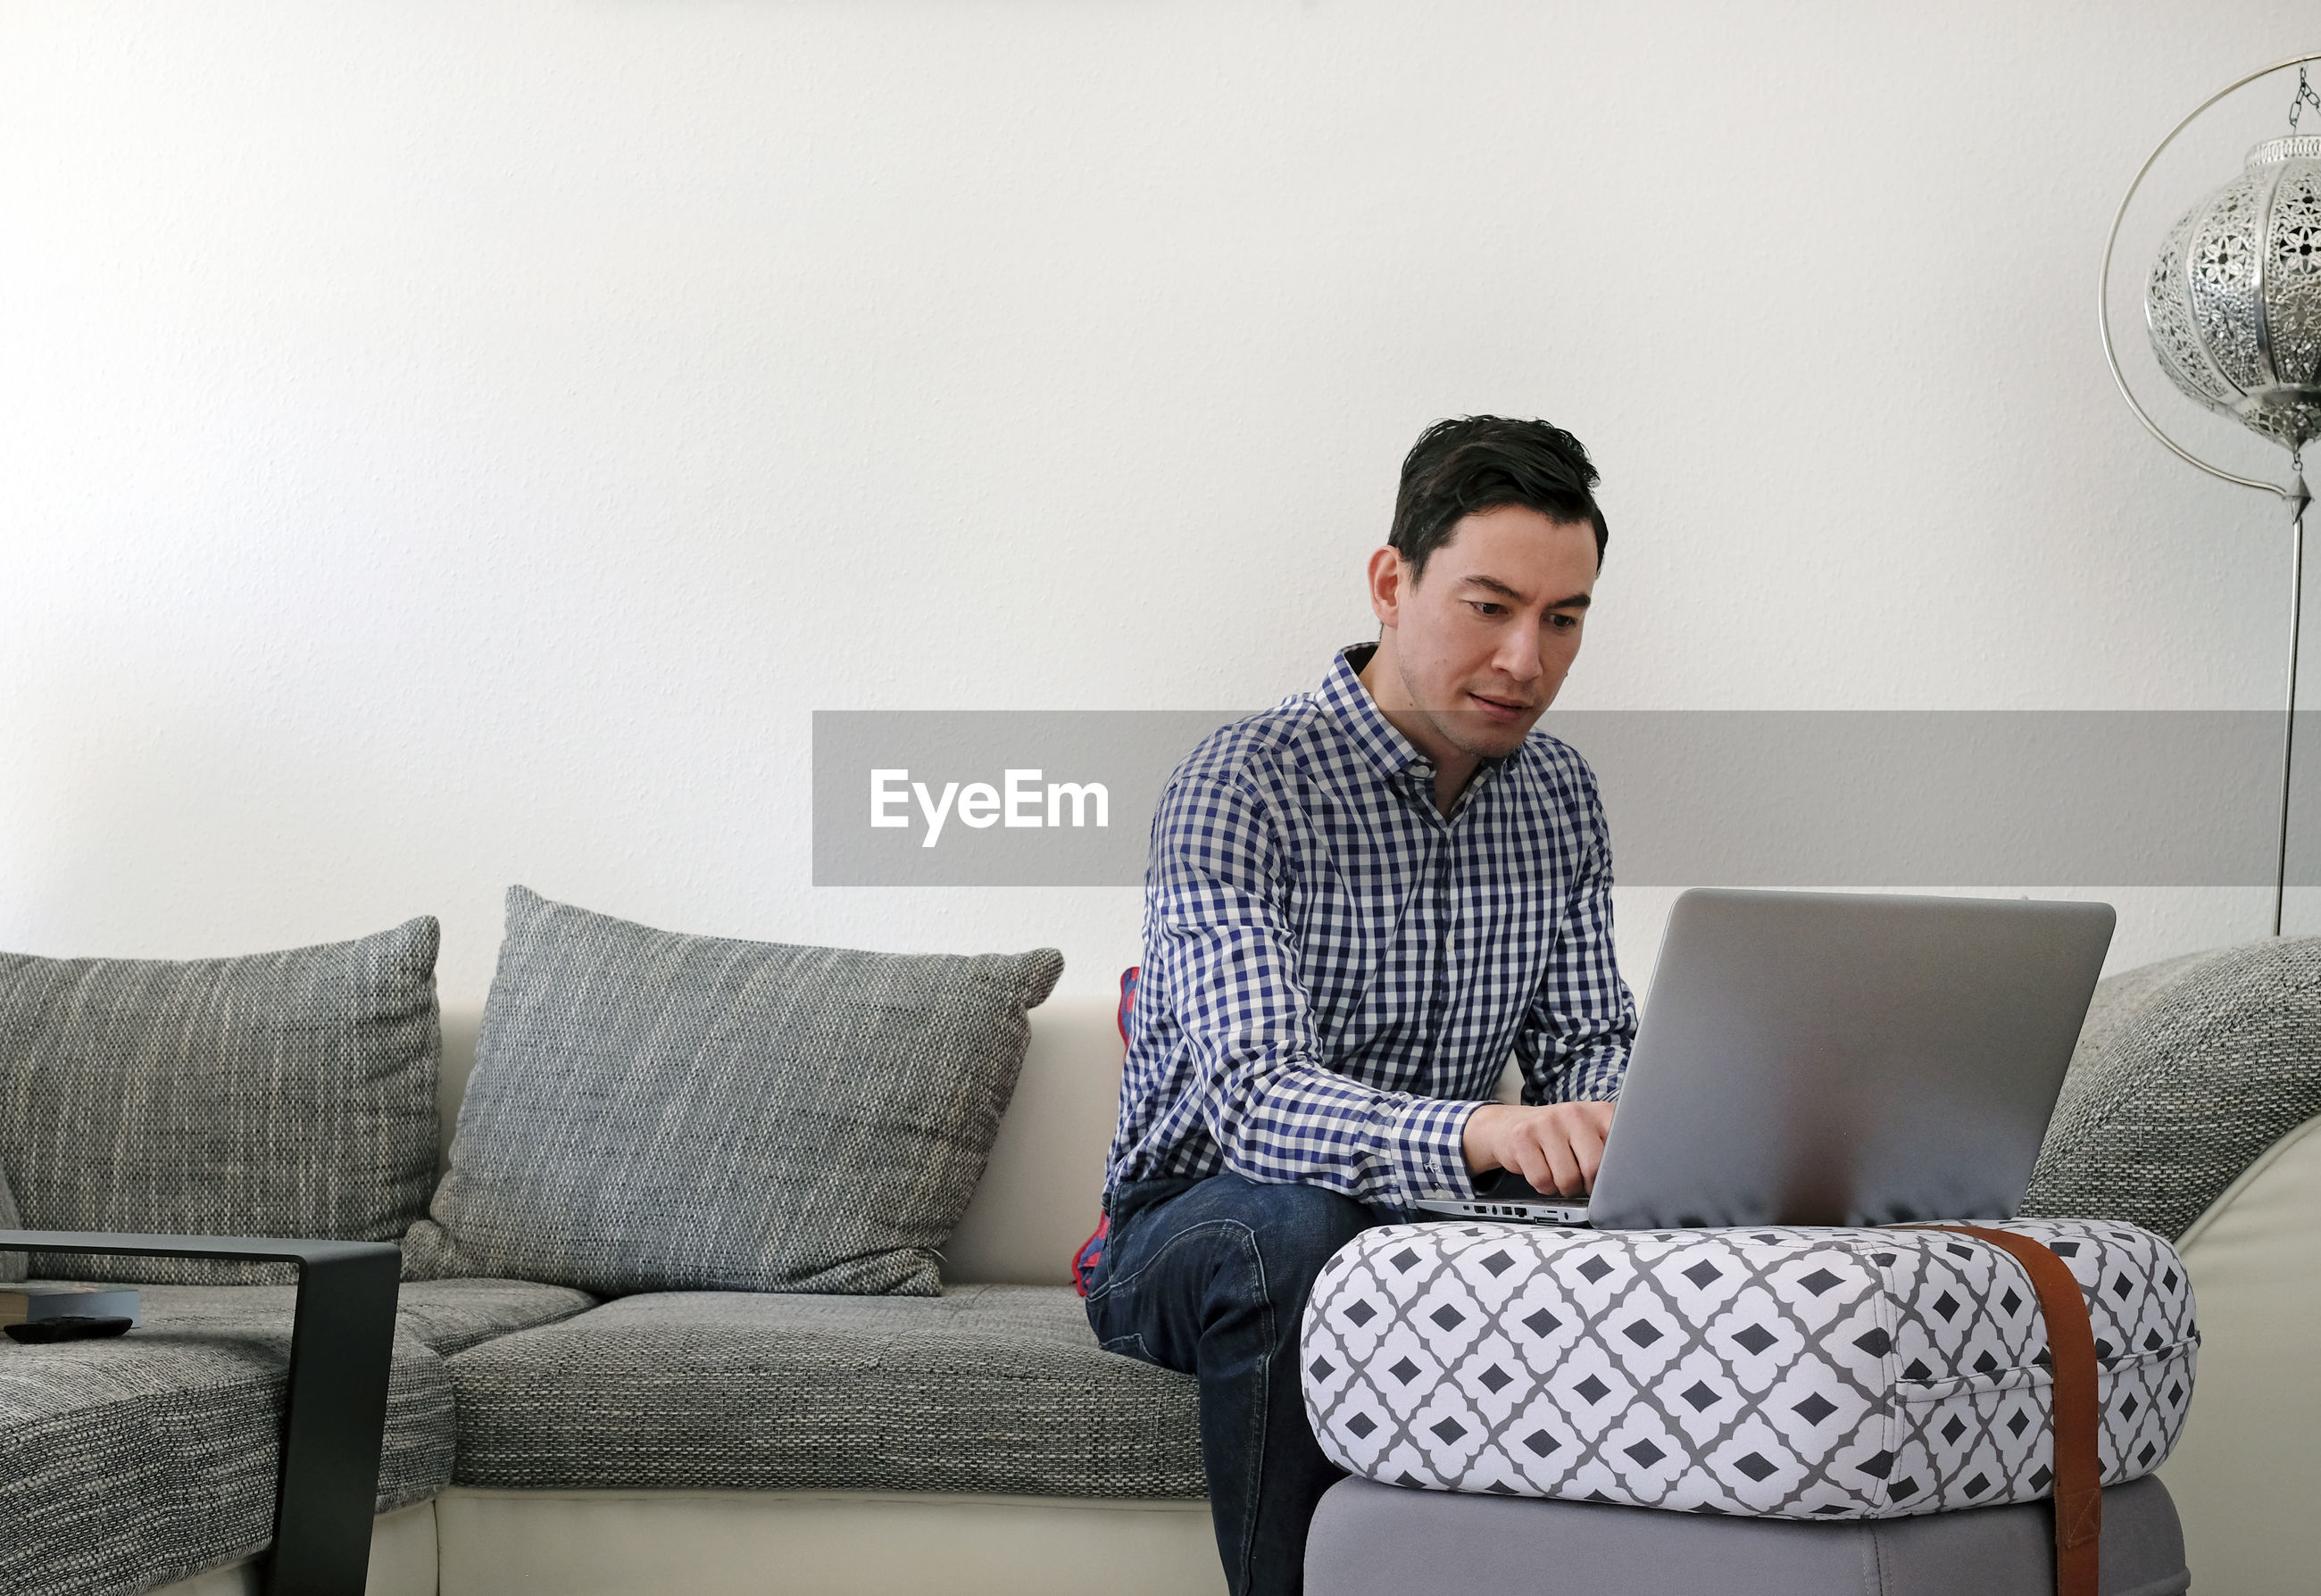 Man using mobile phone while sitting on sofa